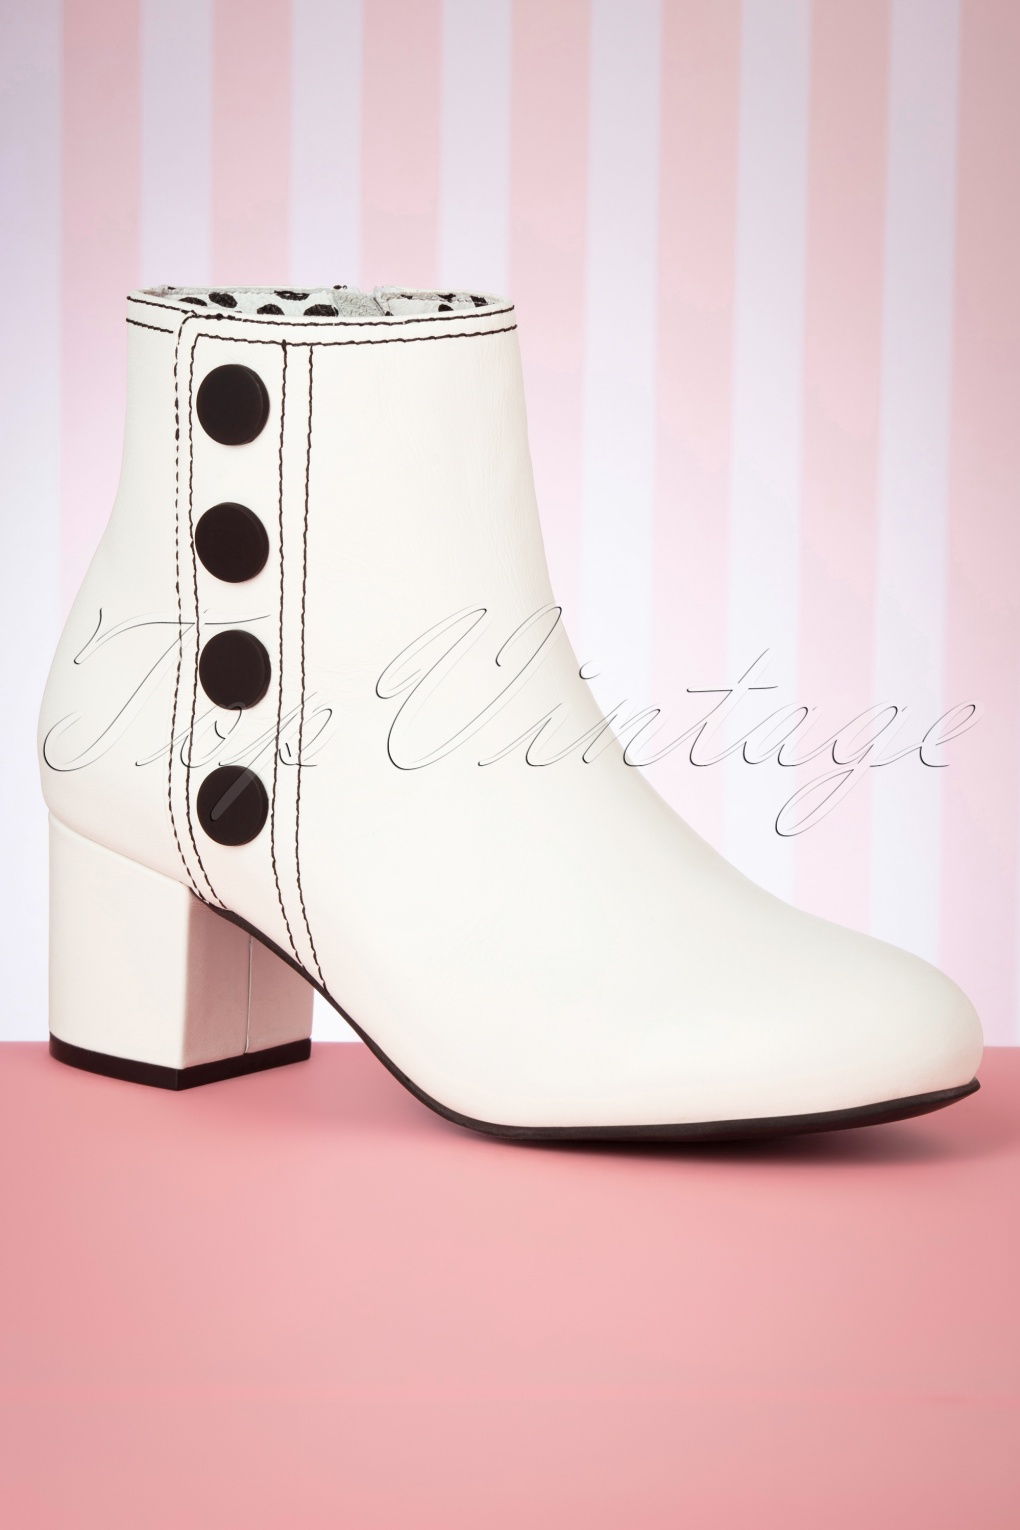 1960s Style Dresses, Clothing, Shoes UK 60s Eve Ankle Booties in Cream £153.59 AT vintagedancer.com